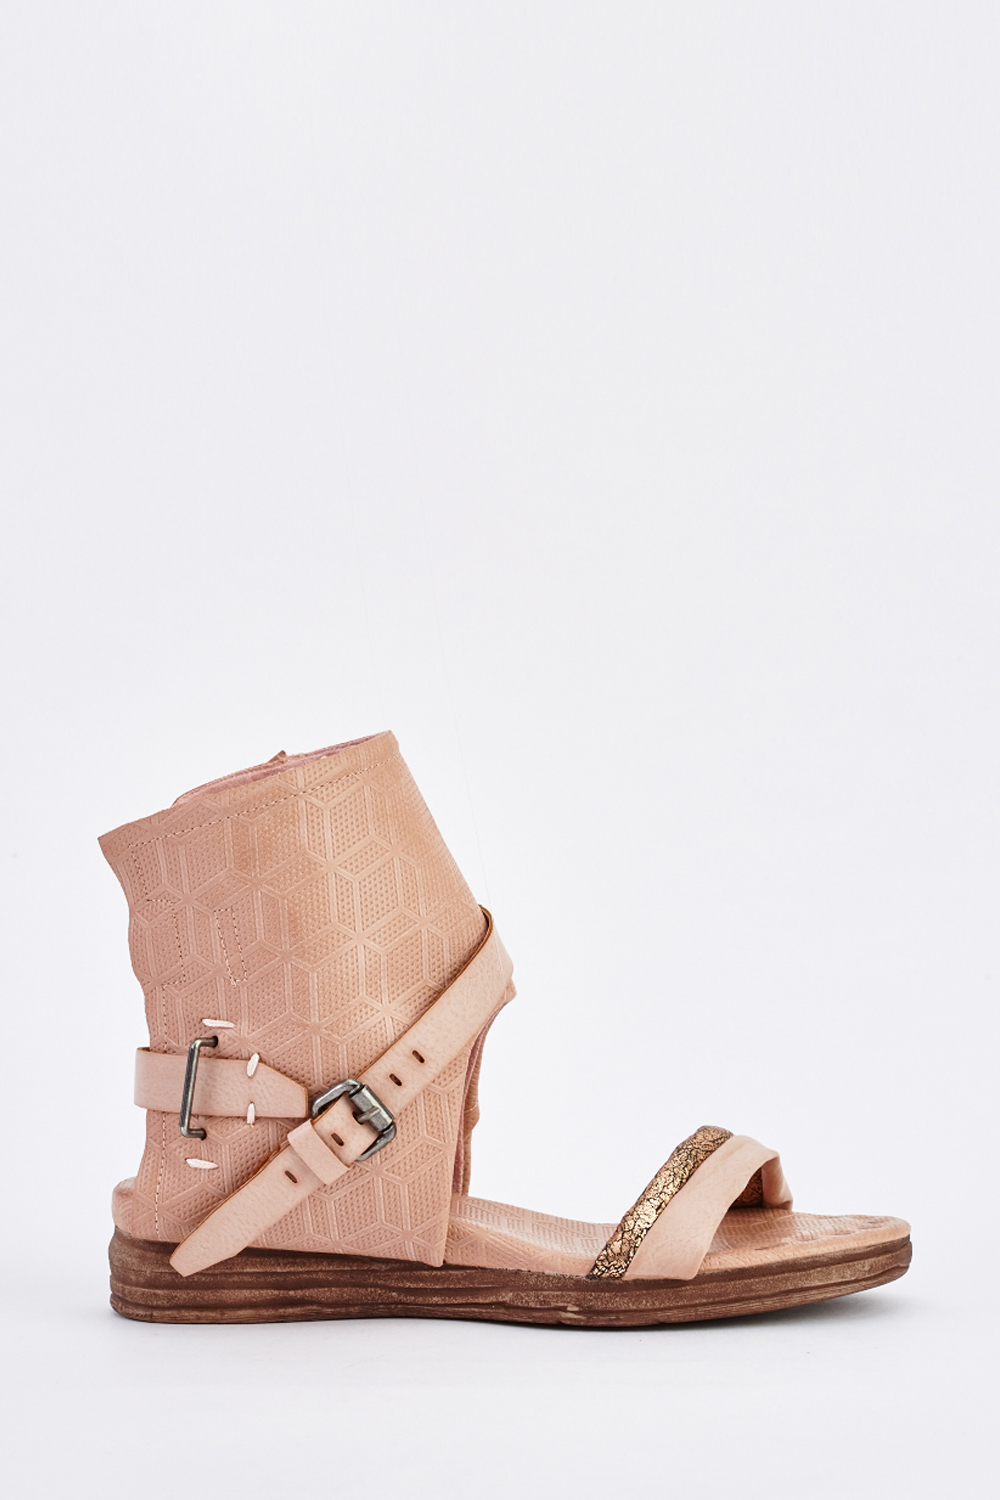 9e7f31b7f Textured Faux Leather Gladiator Sandals - Just £5